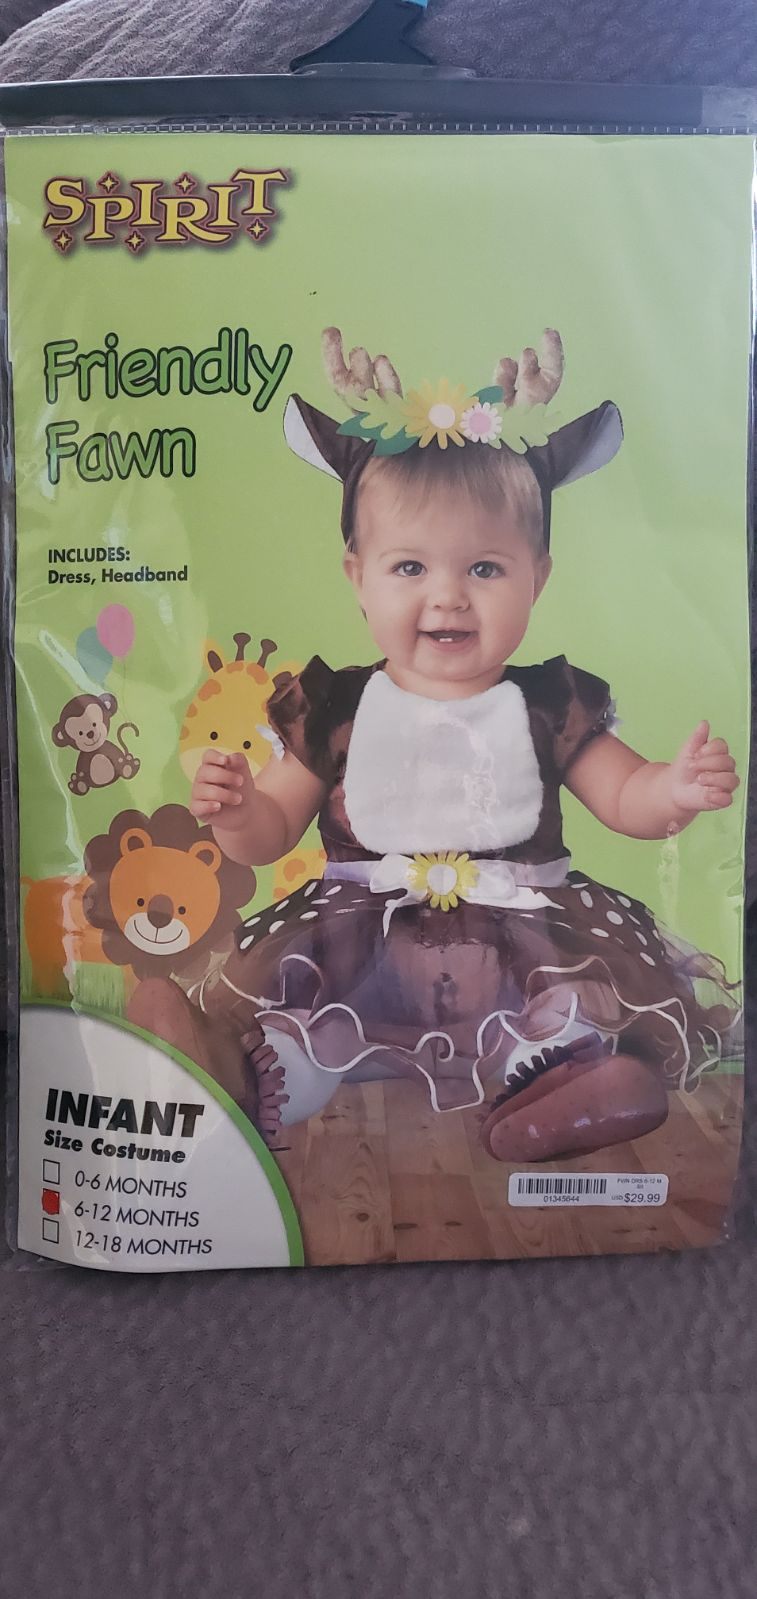 Friendly fawn costume for infants